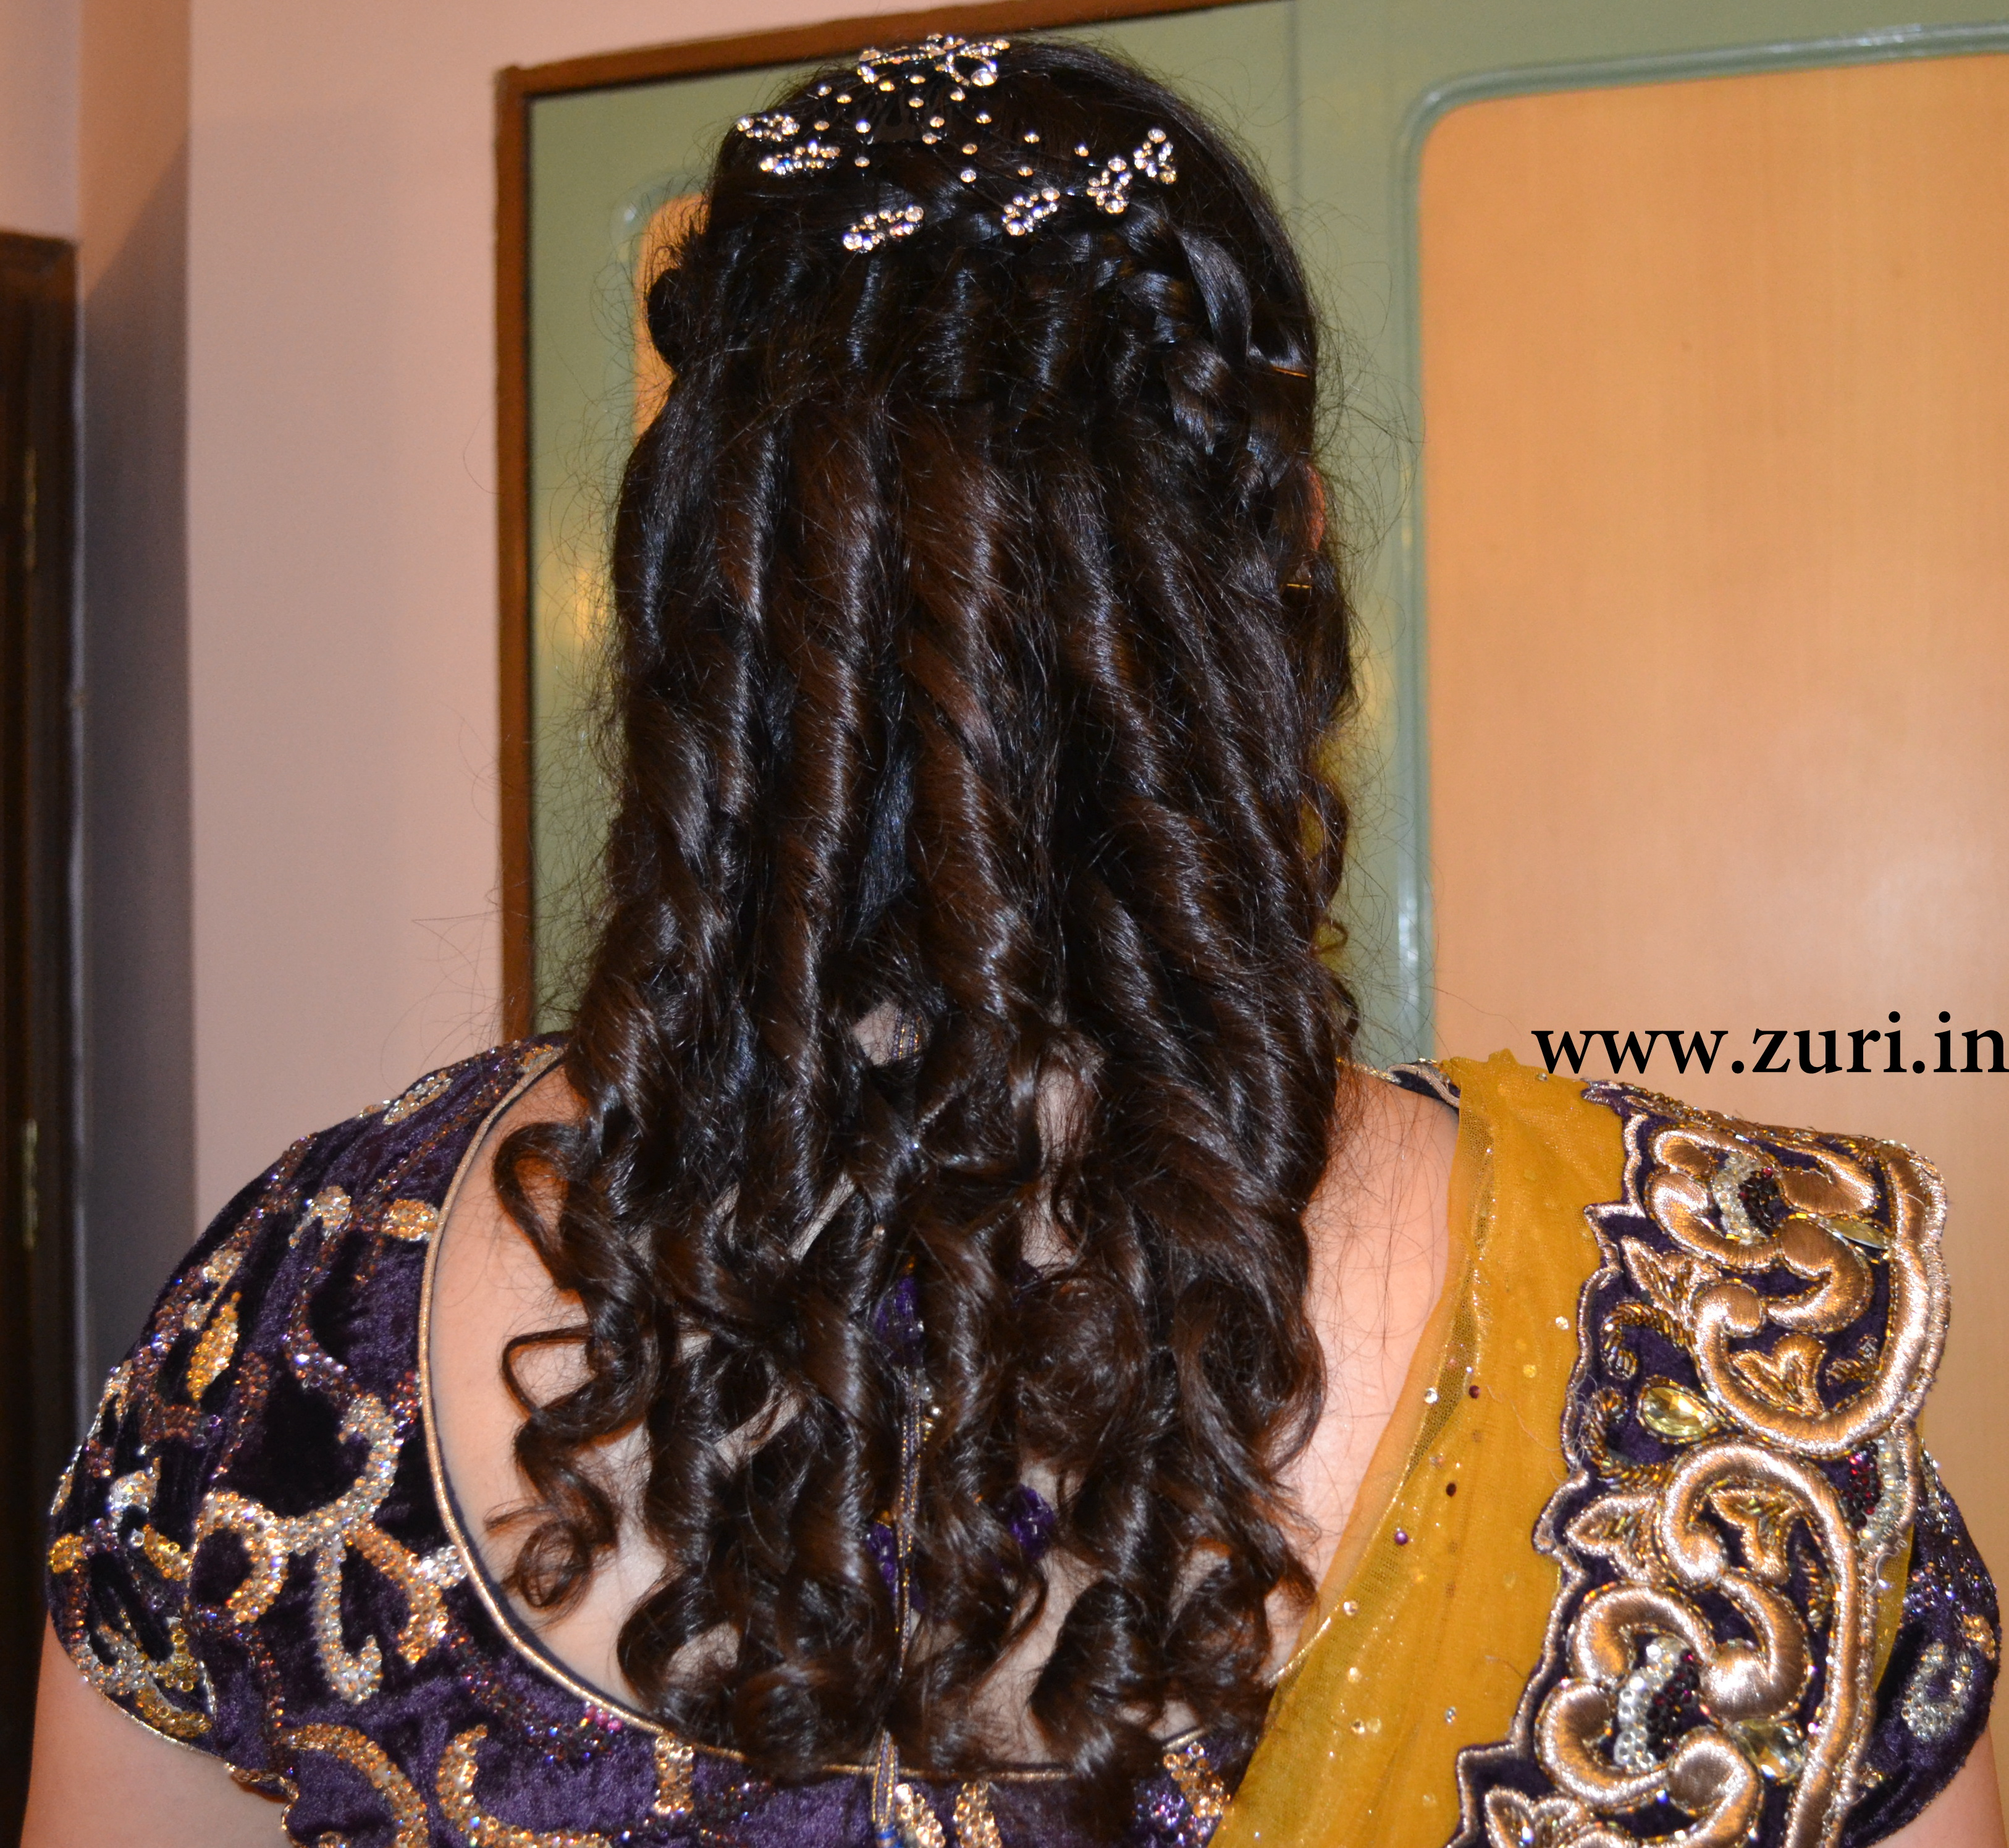 Indian Bridal Hairstyles 16 Indian Makeup And Beauty Blog Beauty